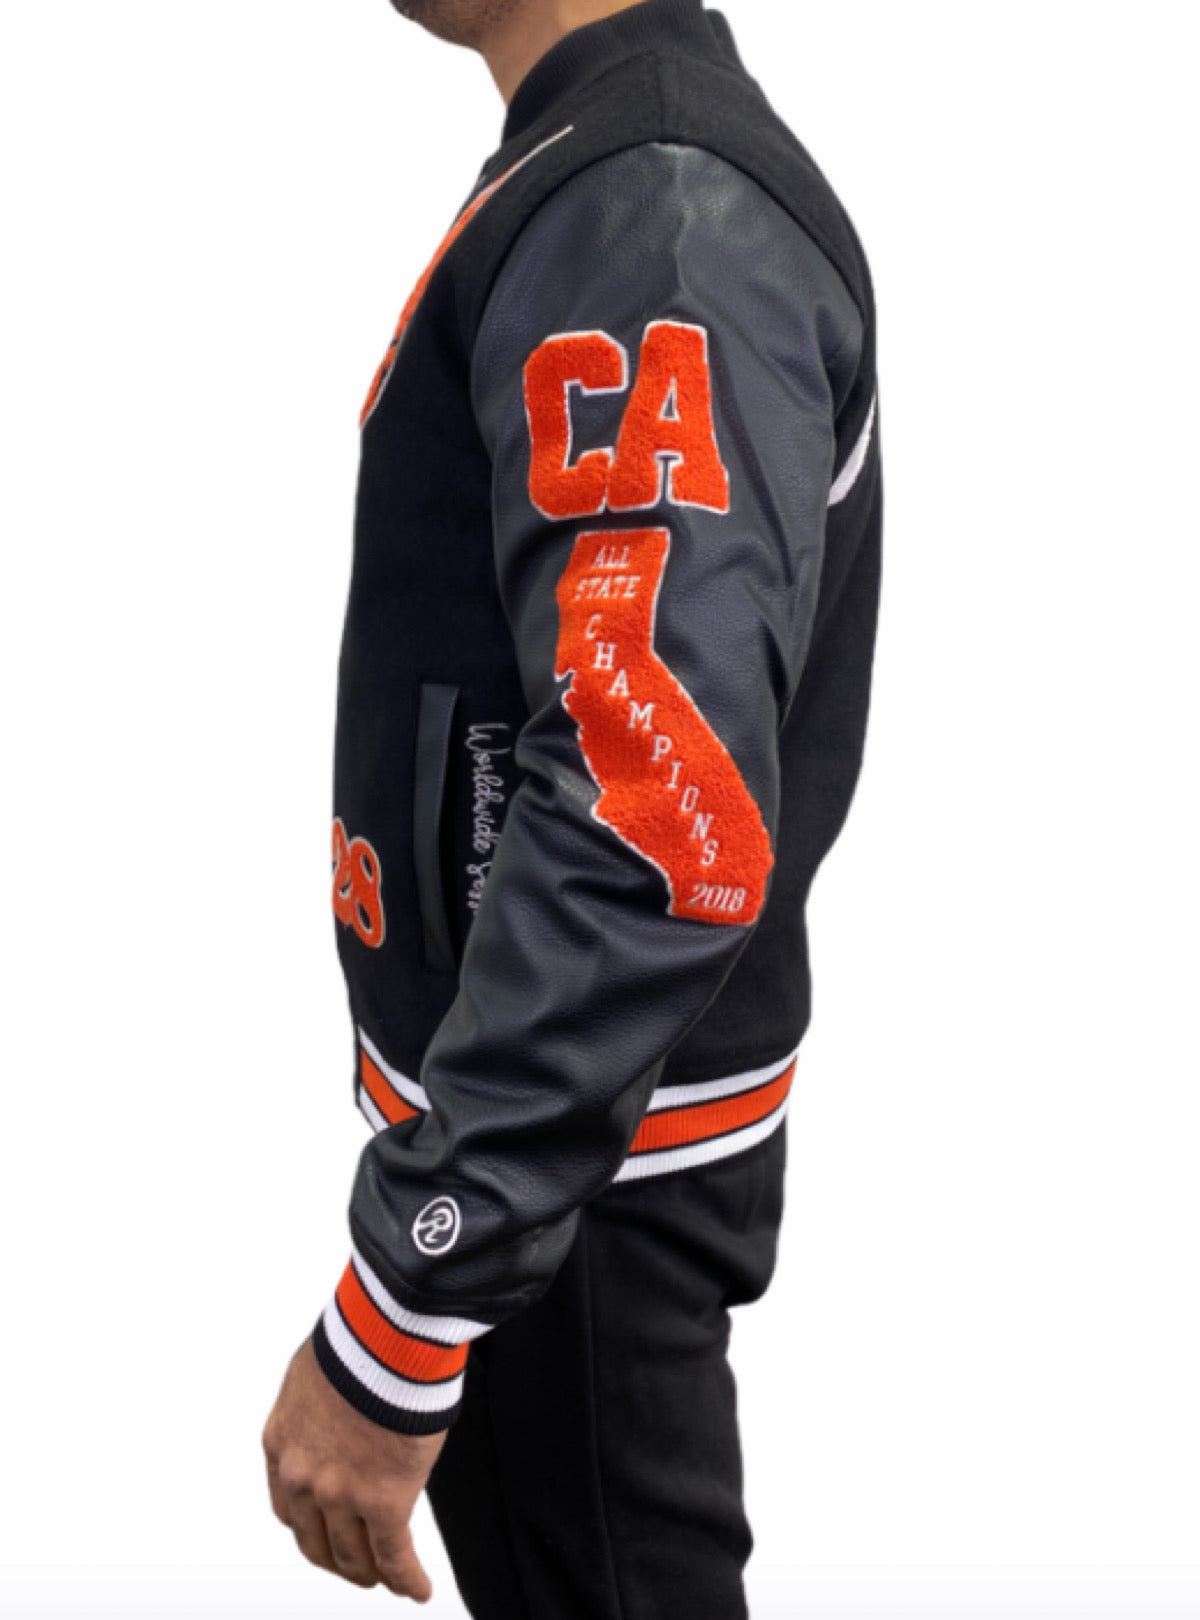 Runtz Jacket - All County Varsity - Black/Orange - 37345